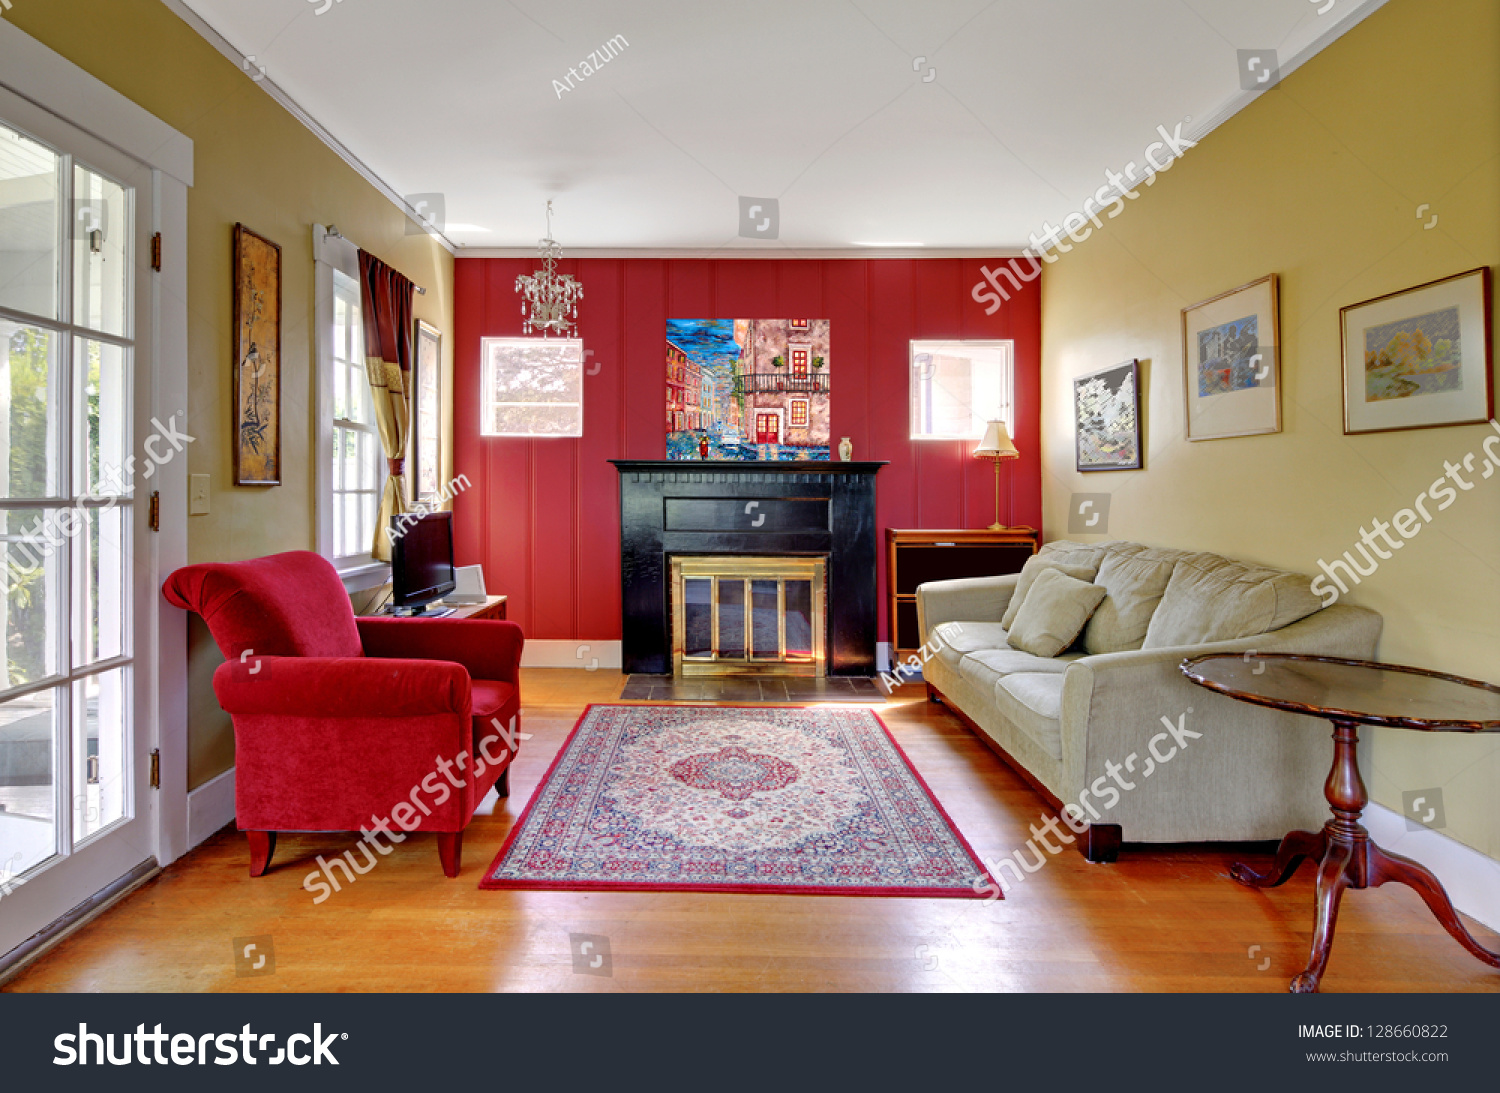 Living Room Red Yellow Walls Fireplace Stock Photo